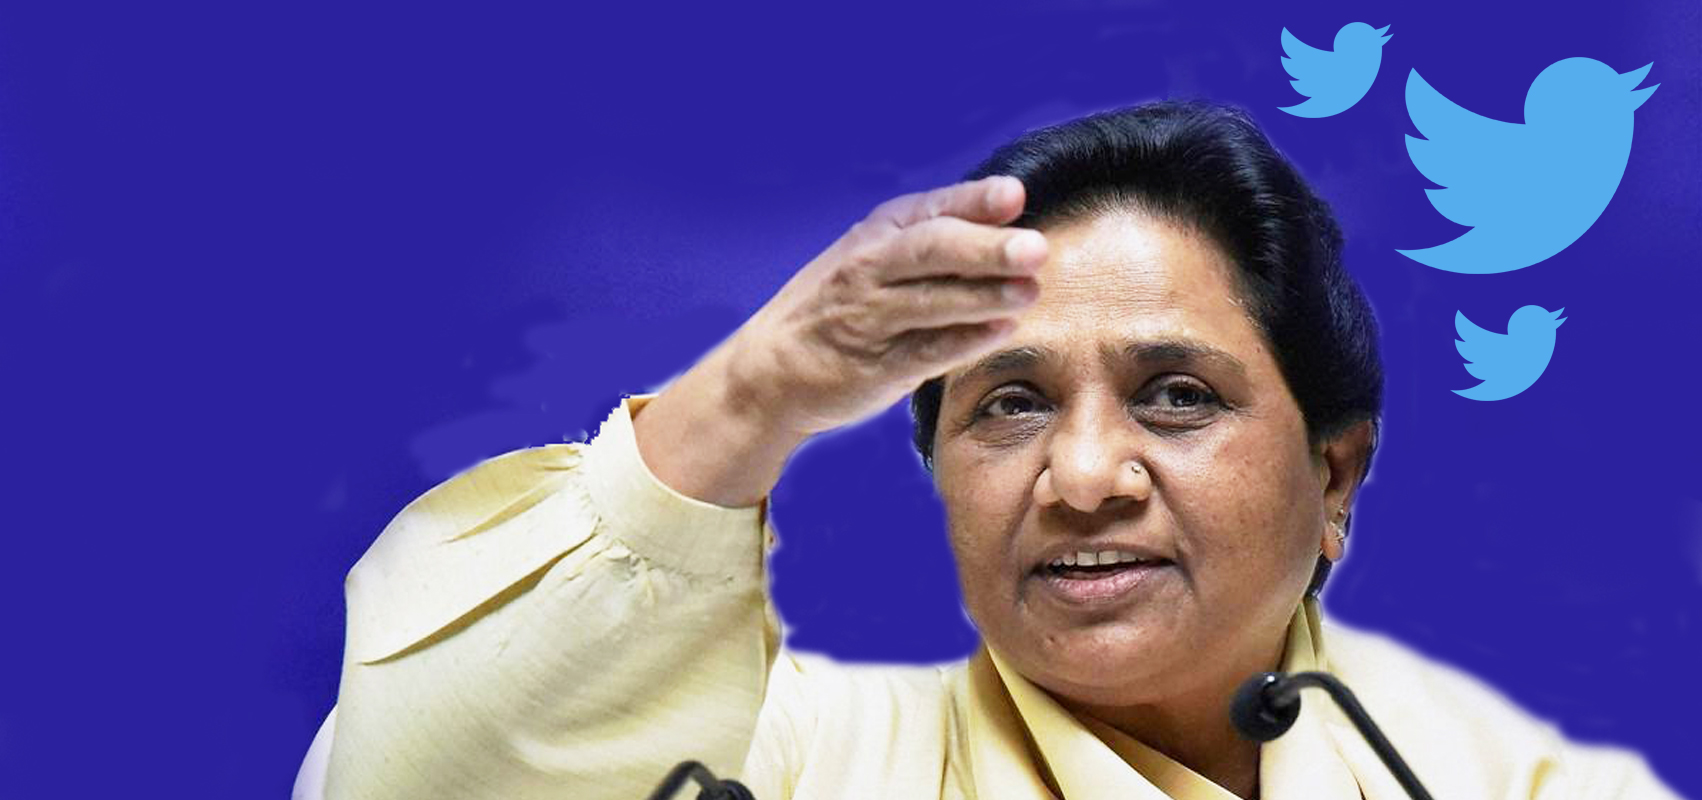 Mayawati's Digital Makeover Gives Away Her Ambition for a Role at the National Stage